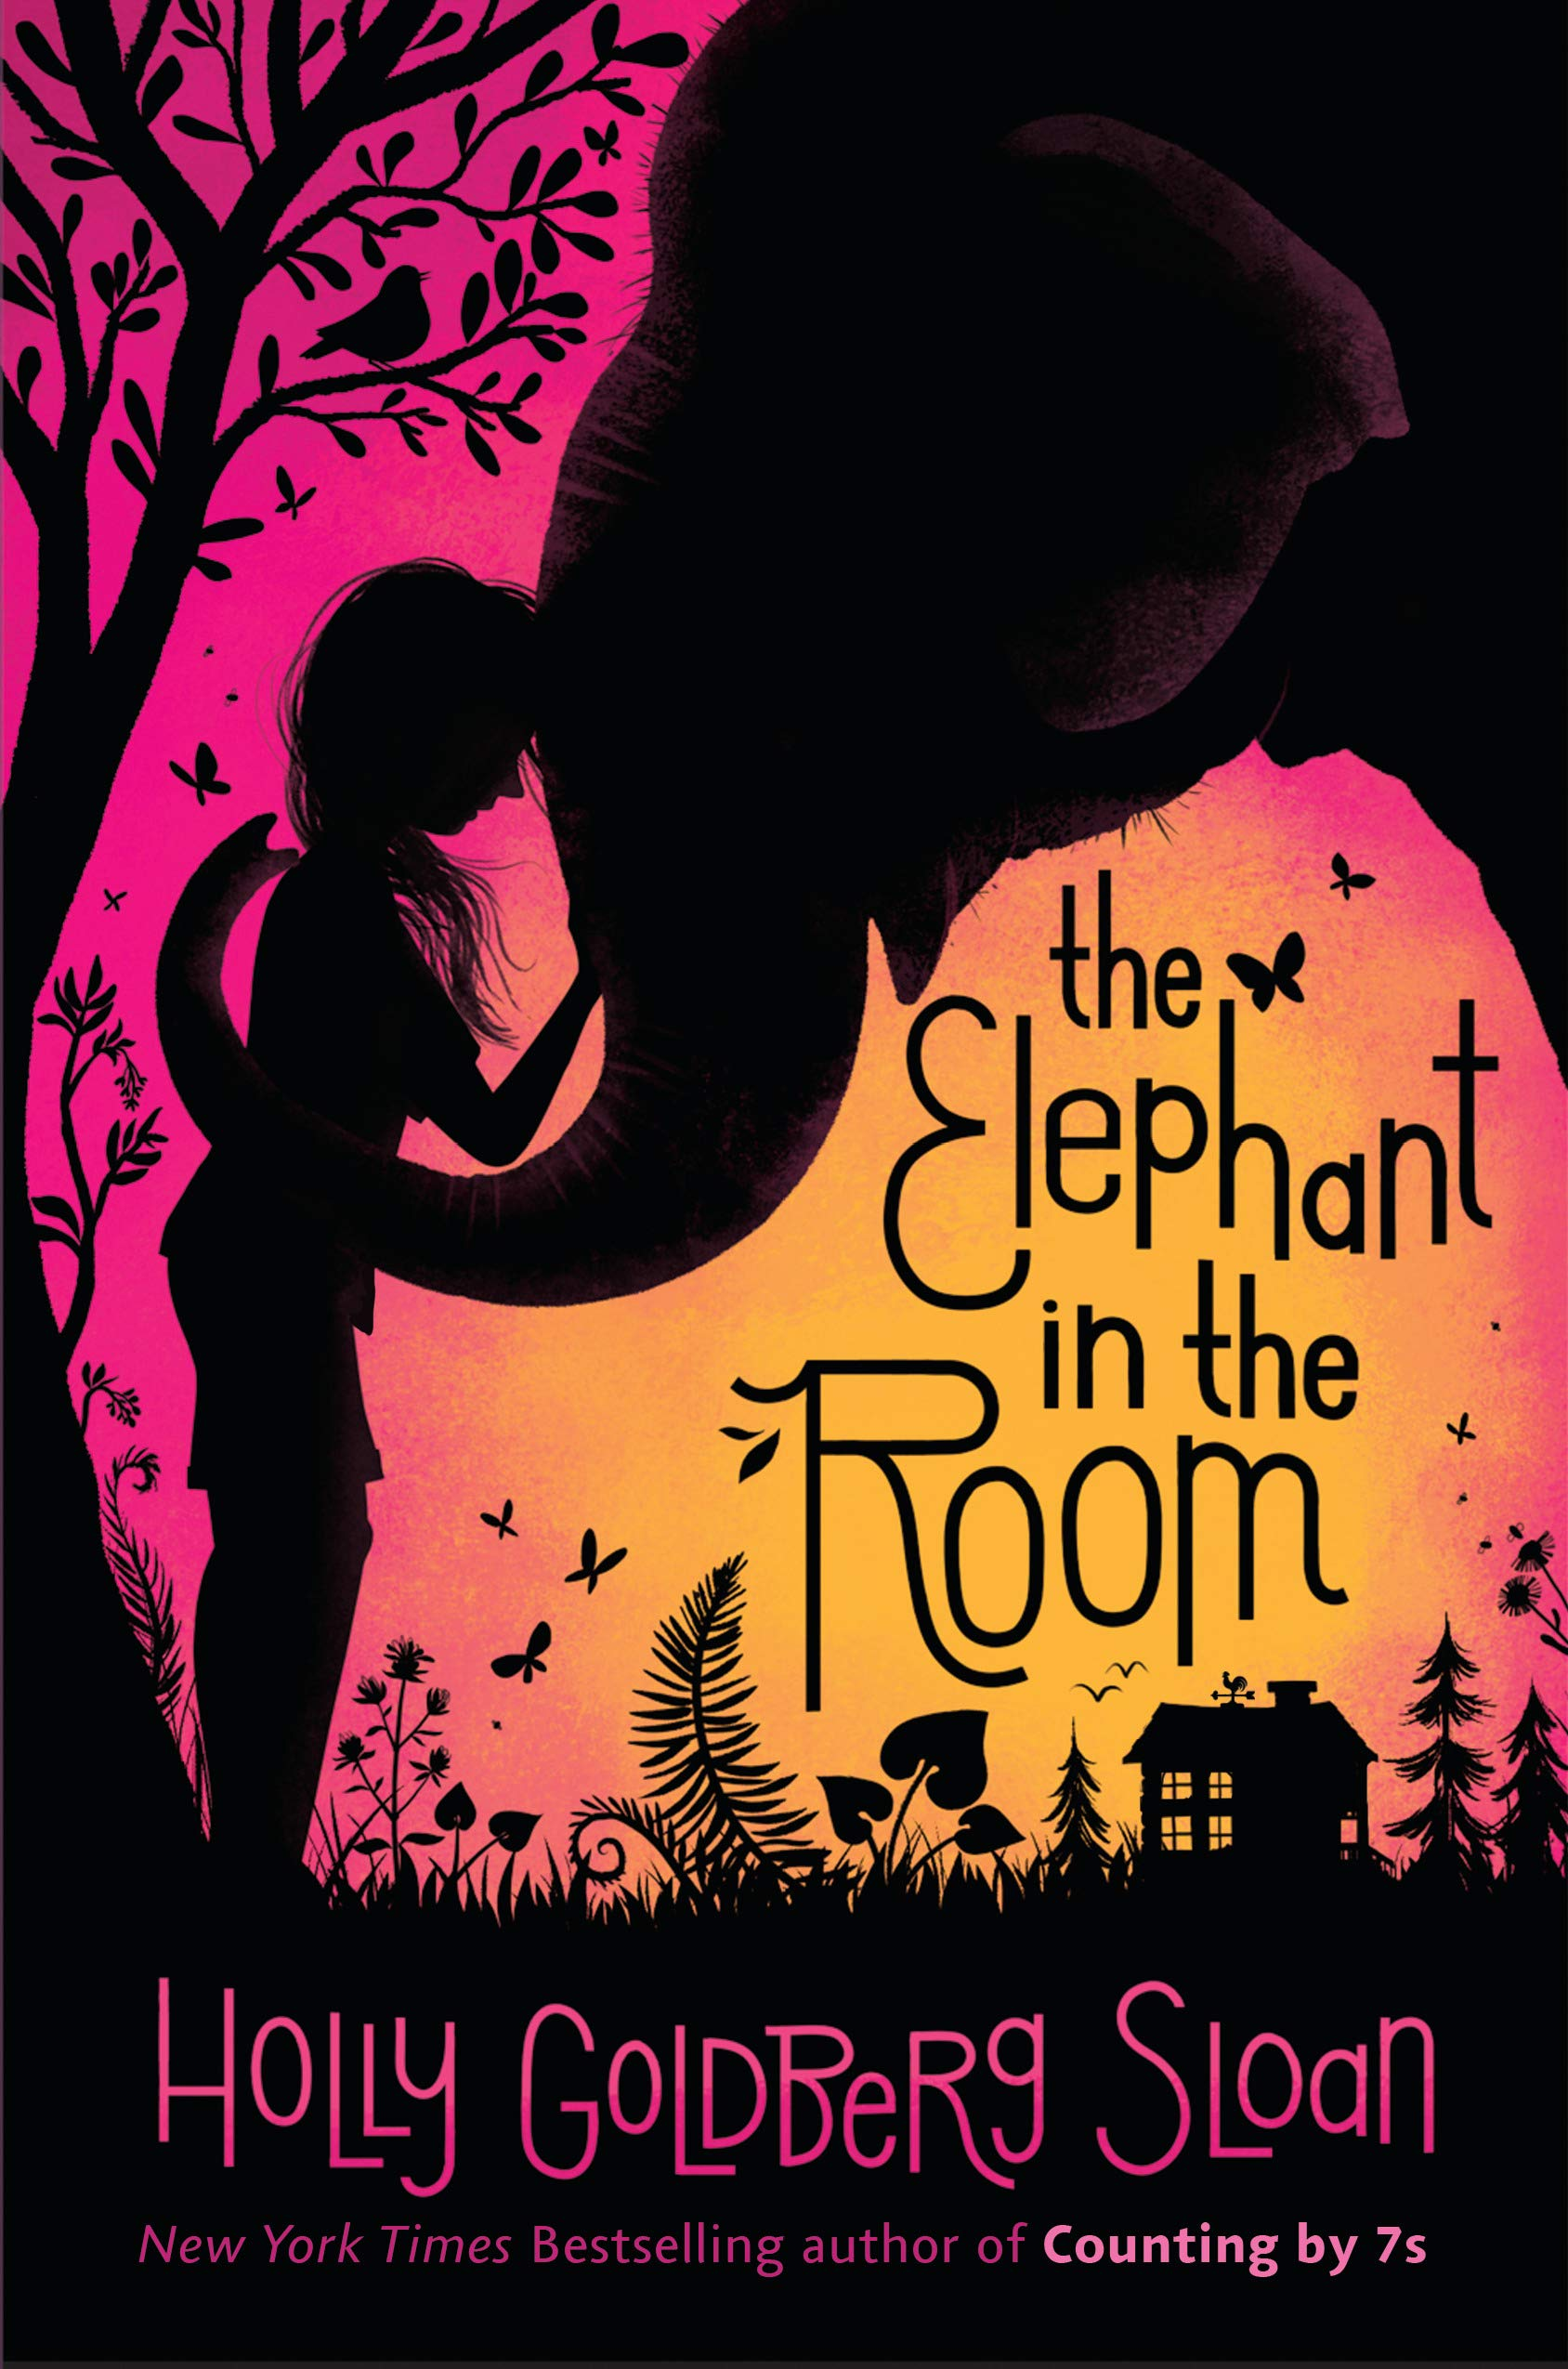 Top 2021 Releases: The Elephant in the Room: Sloan, Holly Goldberg